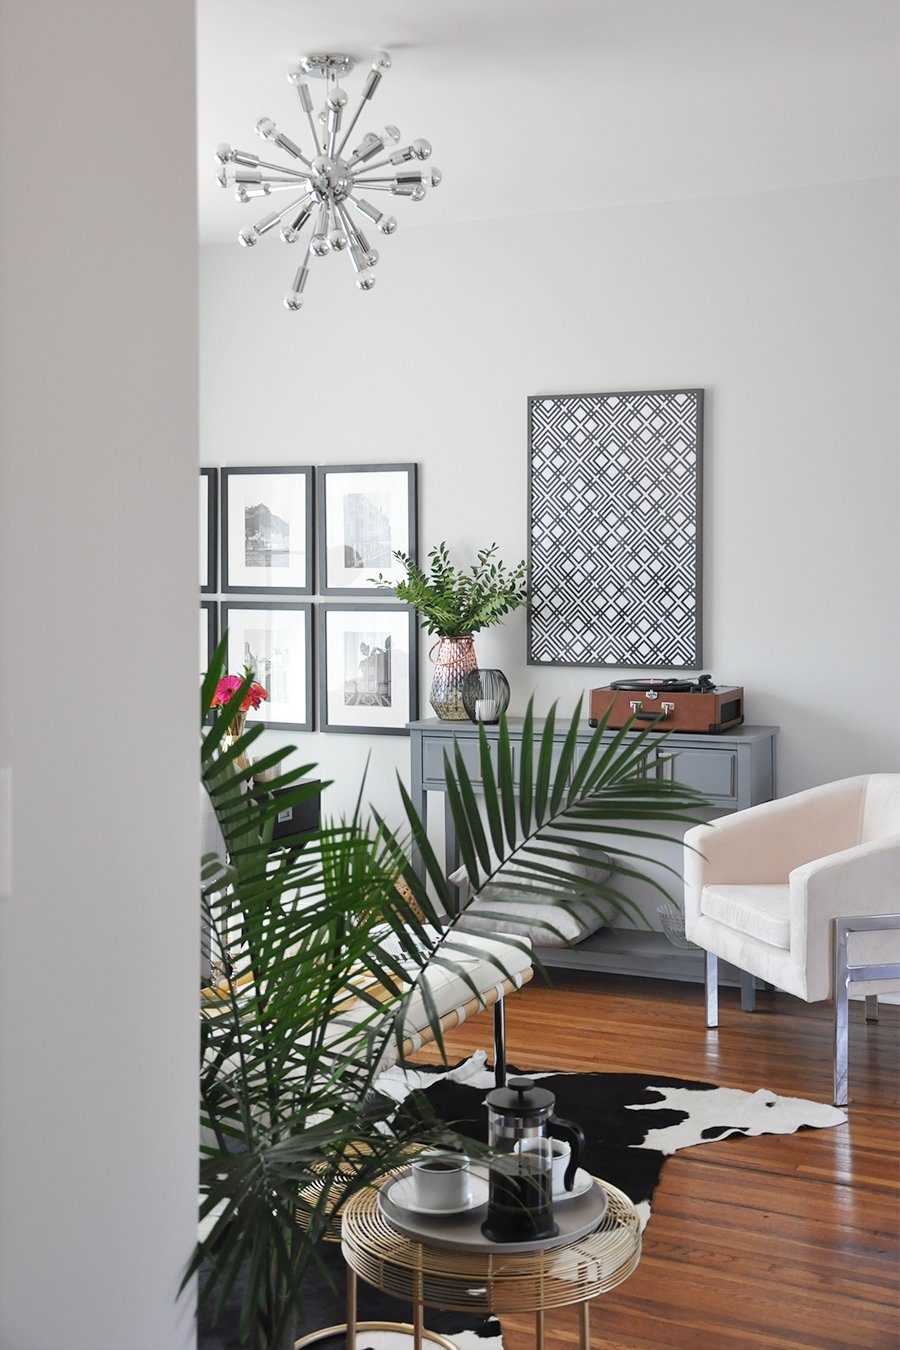 One Room Challenge, Week 6: Living Room Tour and Sources